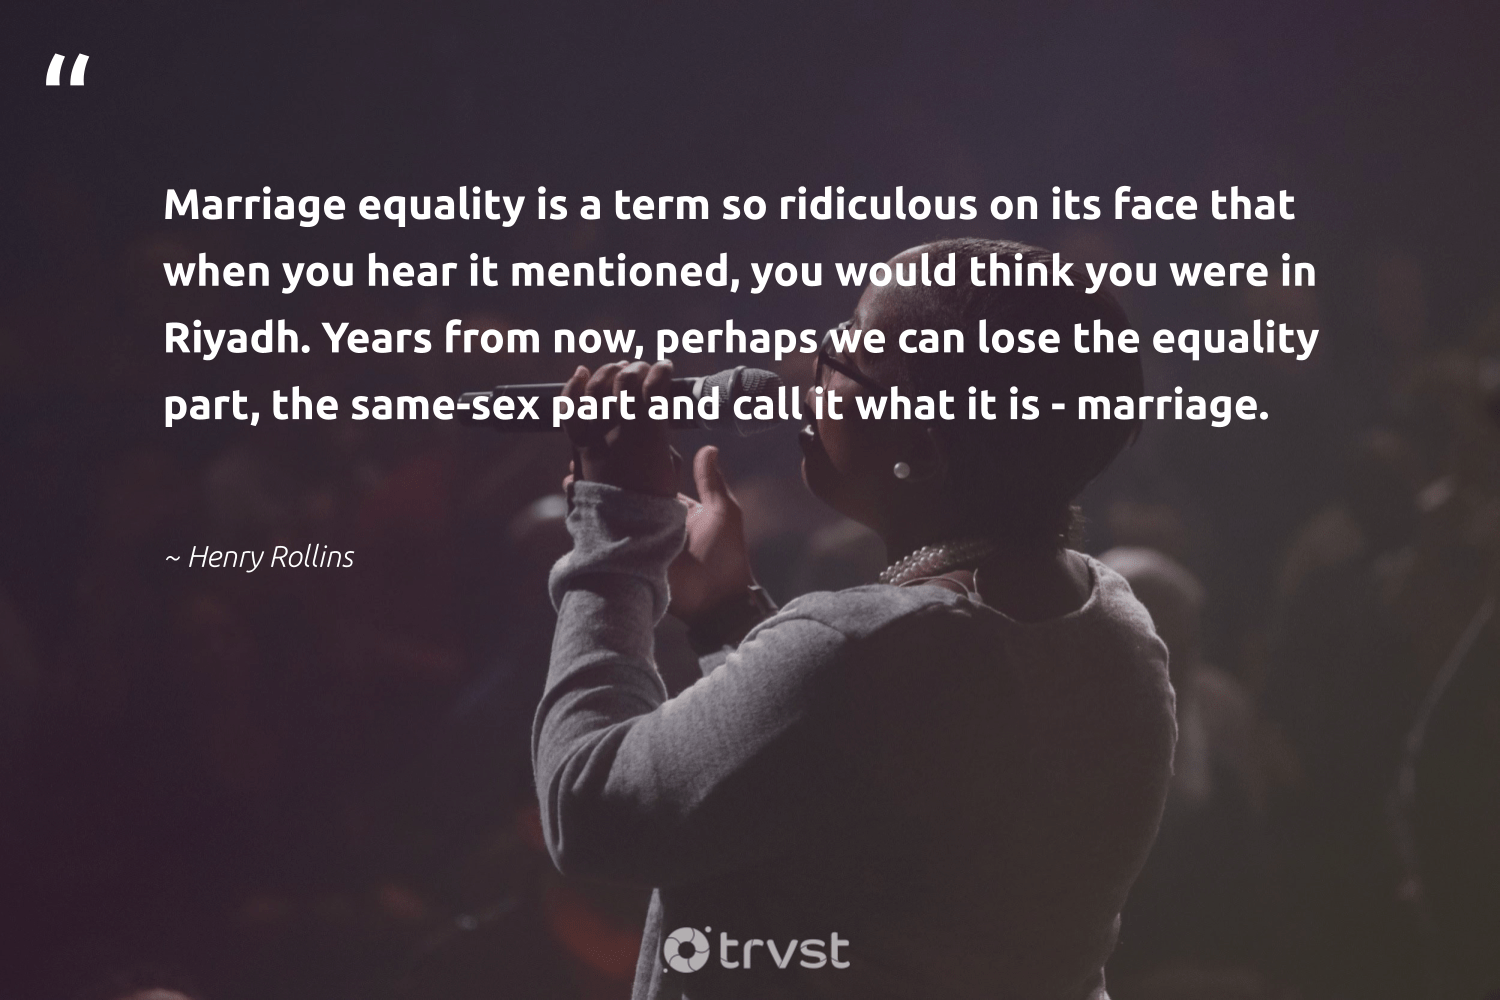 """Marriage equality is a term so ridiculous on its face that when you hear it mentioned, you would think you were in Riyadh. Years from now, perhaps we can lose the equality part, the same-sex part and call it what it is - marriage.""  - Henry Rollins #trvst #quotes #equality #equalopportunity #socialchange #makeadifference #socialimpact #standup #socialgood #giveback #impact #equalrights"